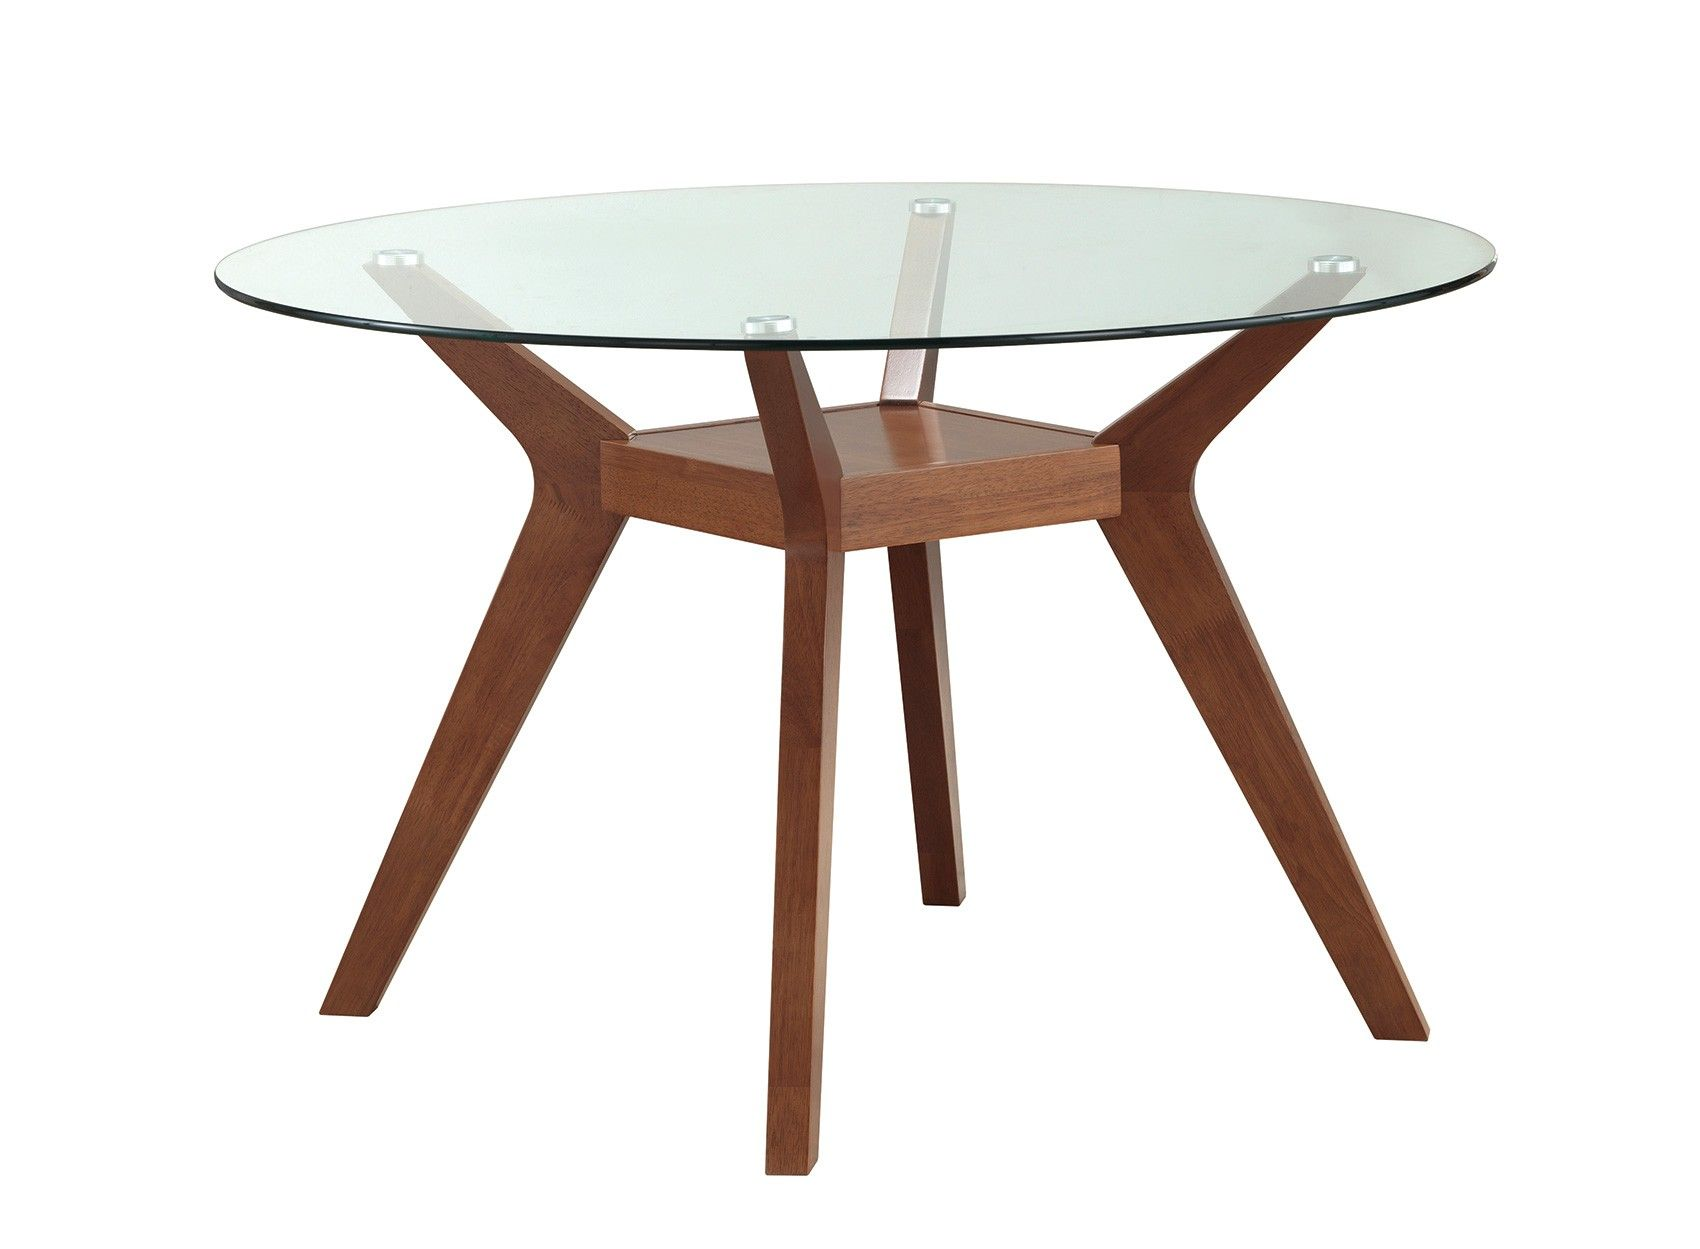 Buy Coaster 122180 Dining Tables Online  Trusted Since 1951 Alluring Bases For Glass Dining Room Tables Decorating Design